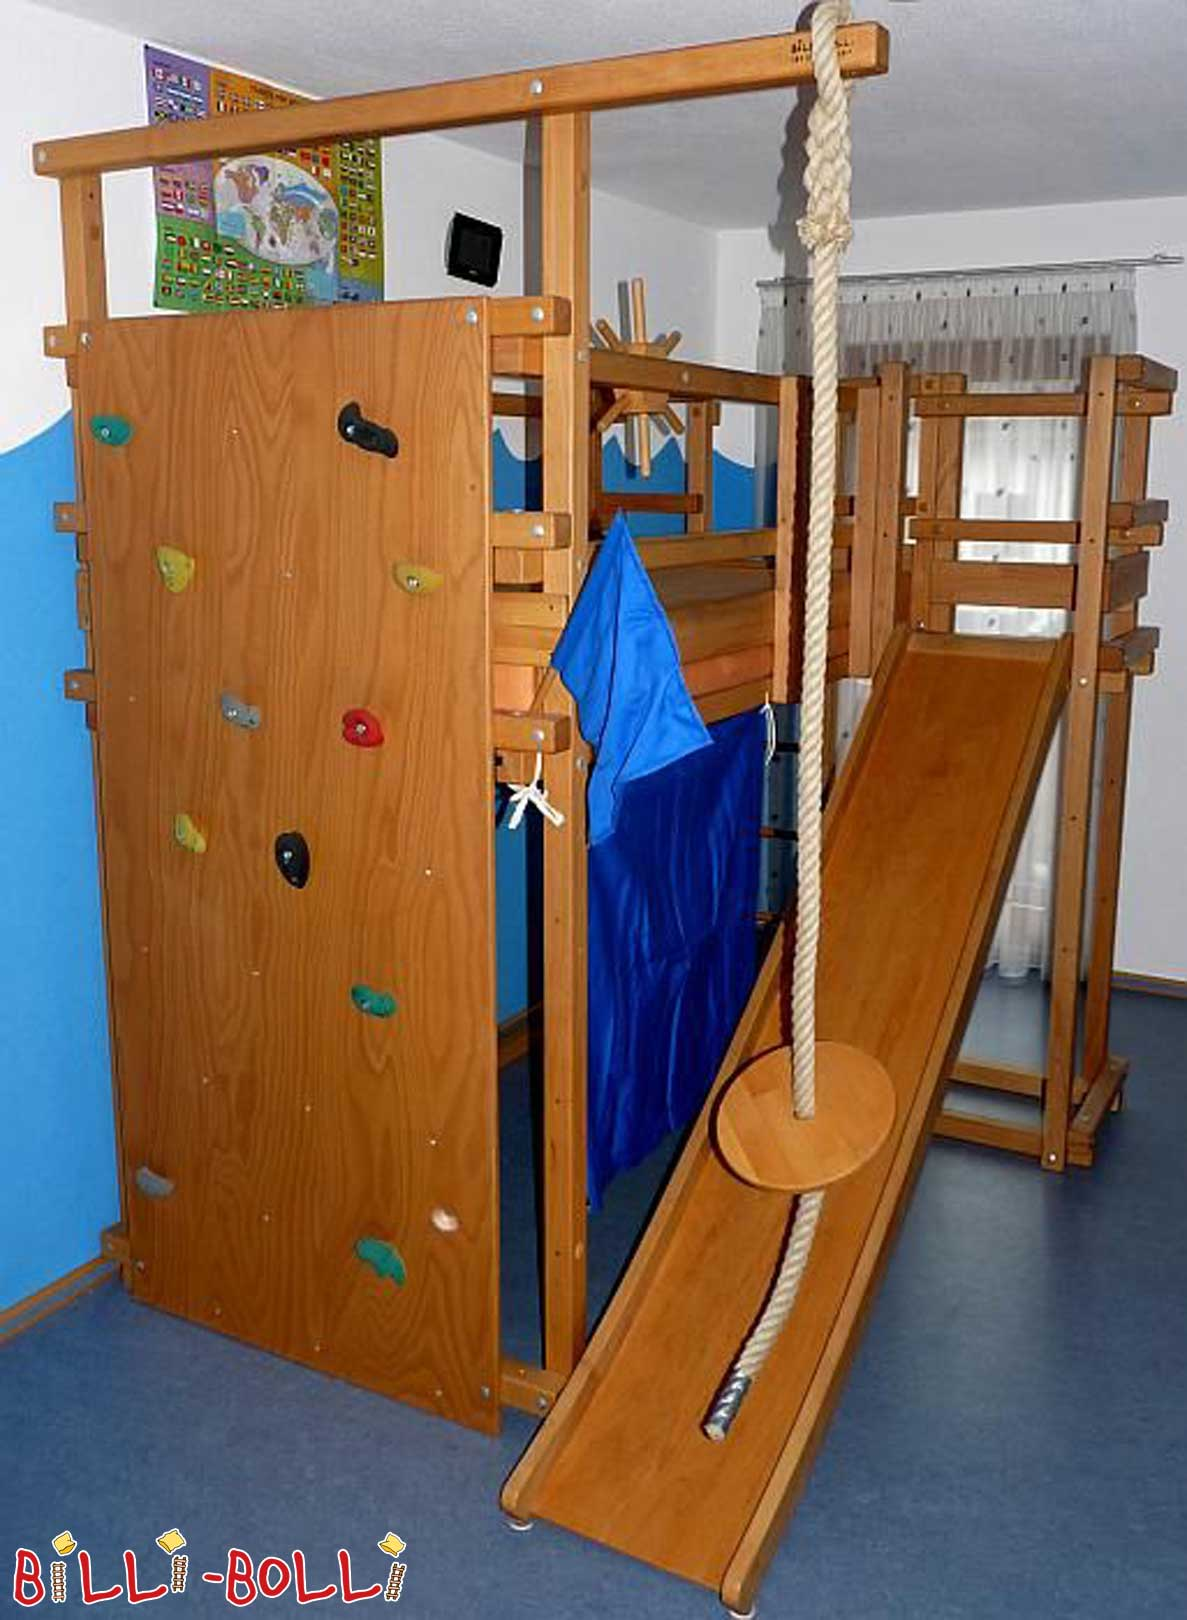 secondhand seite 109 billi bolli kinderm bel. Black Bedroom Furniture Sets. Home Design Ideas